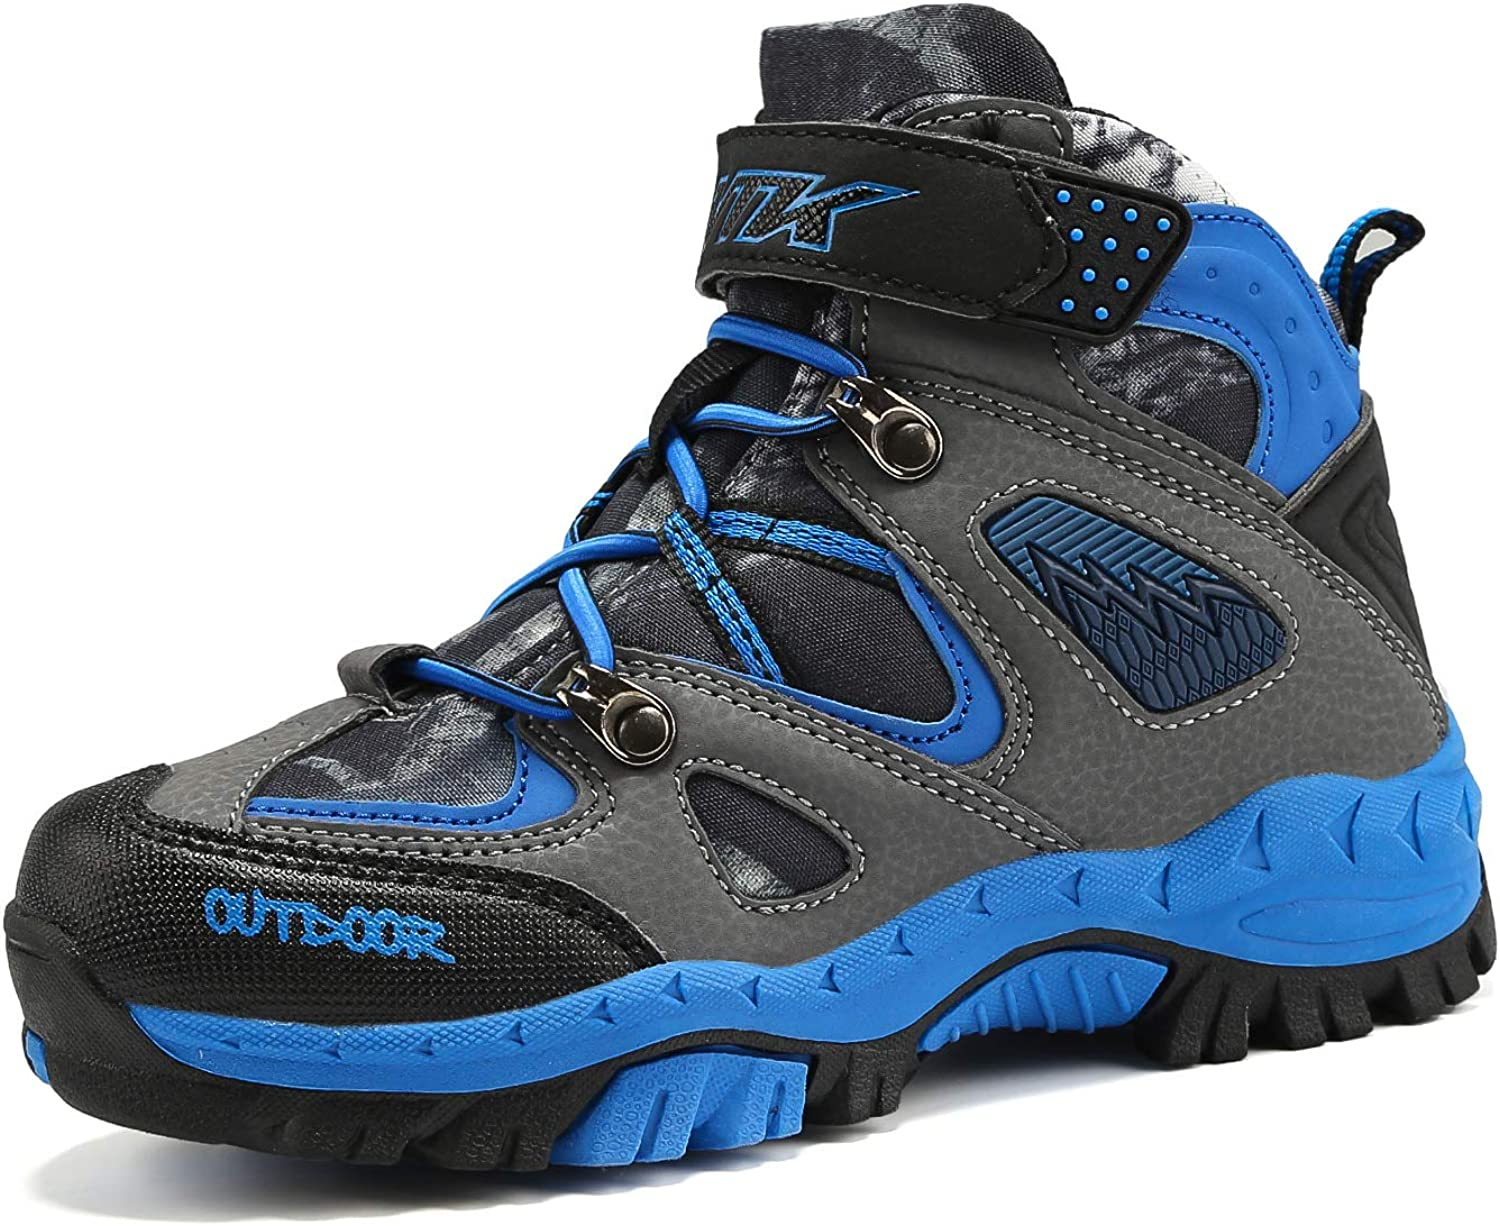 Boys Hiking Boots Kids Outdoor Sports Shoes Climbing Sneaker Comfortable Non-Slip Snow Shoes Hiker Boot Antiskid Steel Buckle Sole